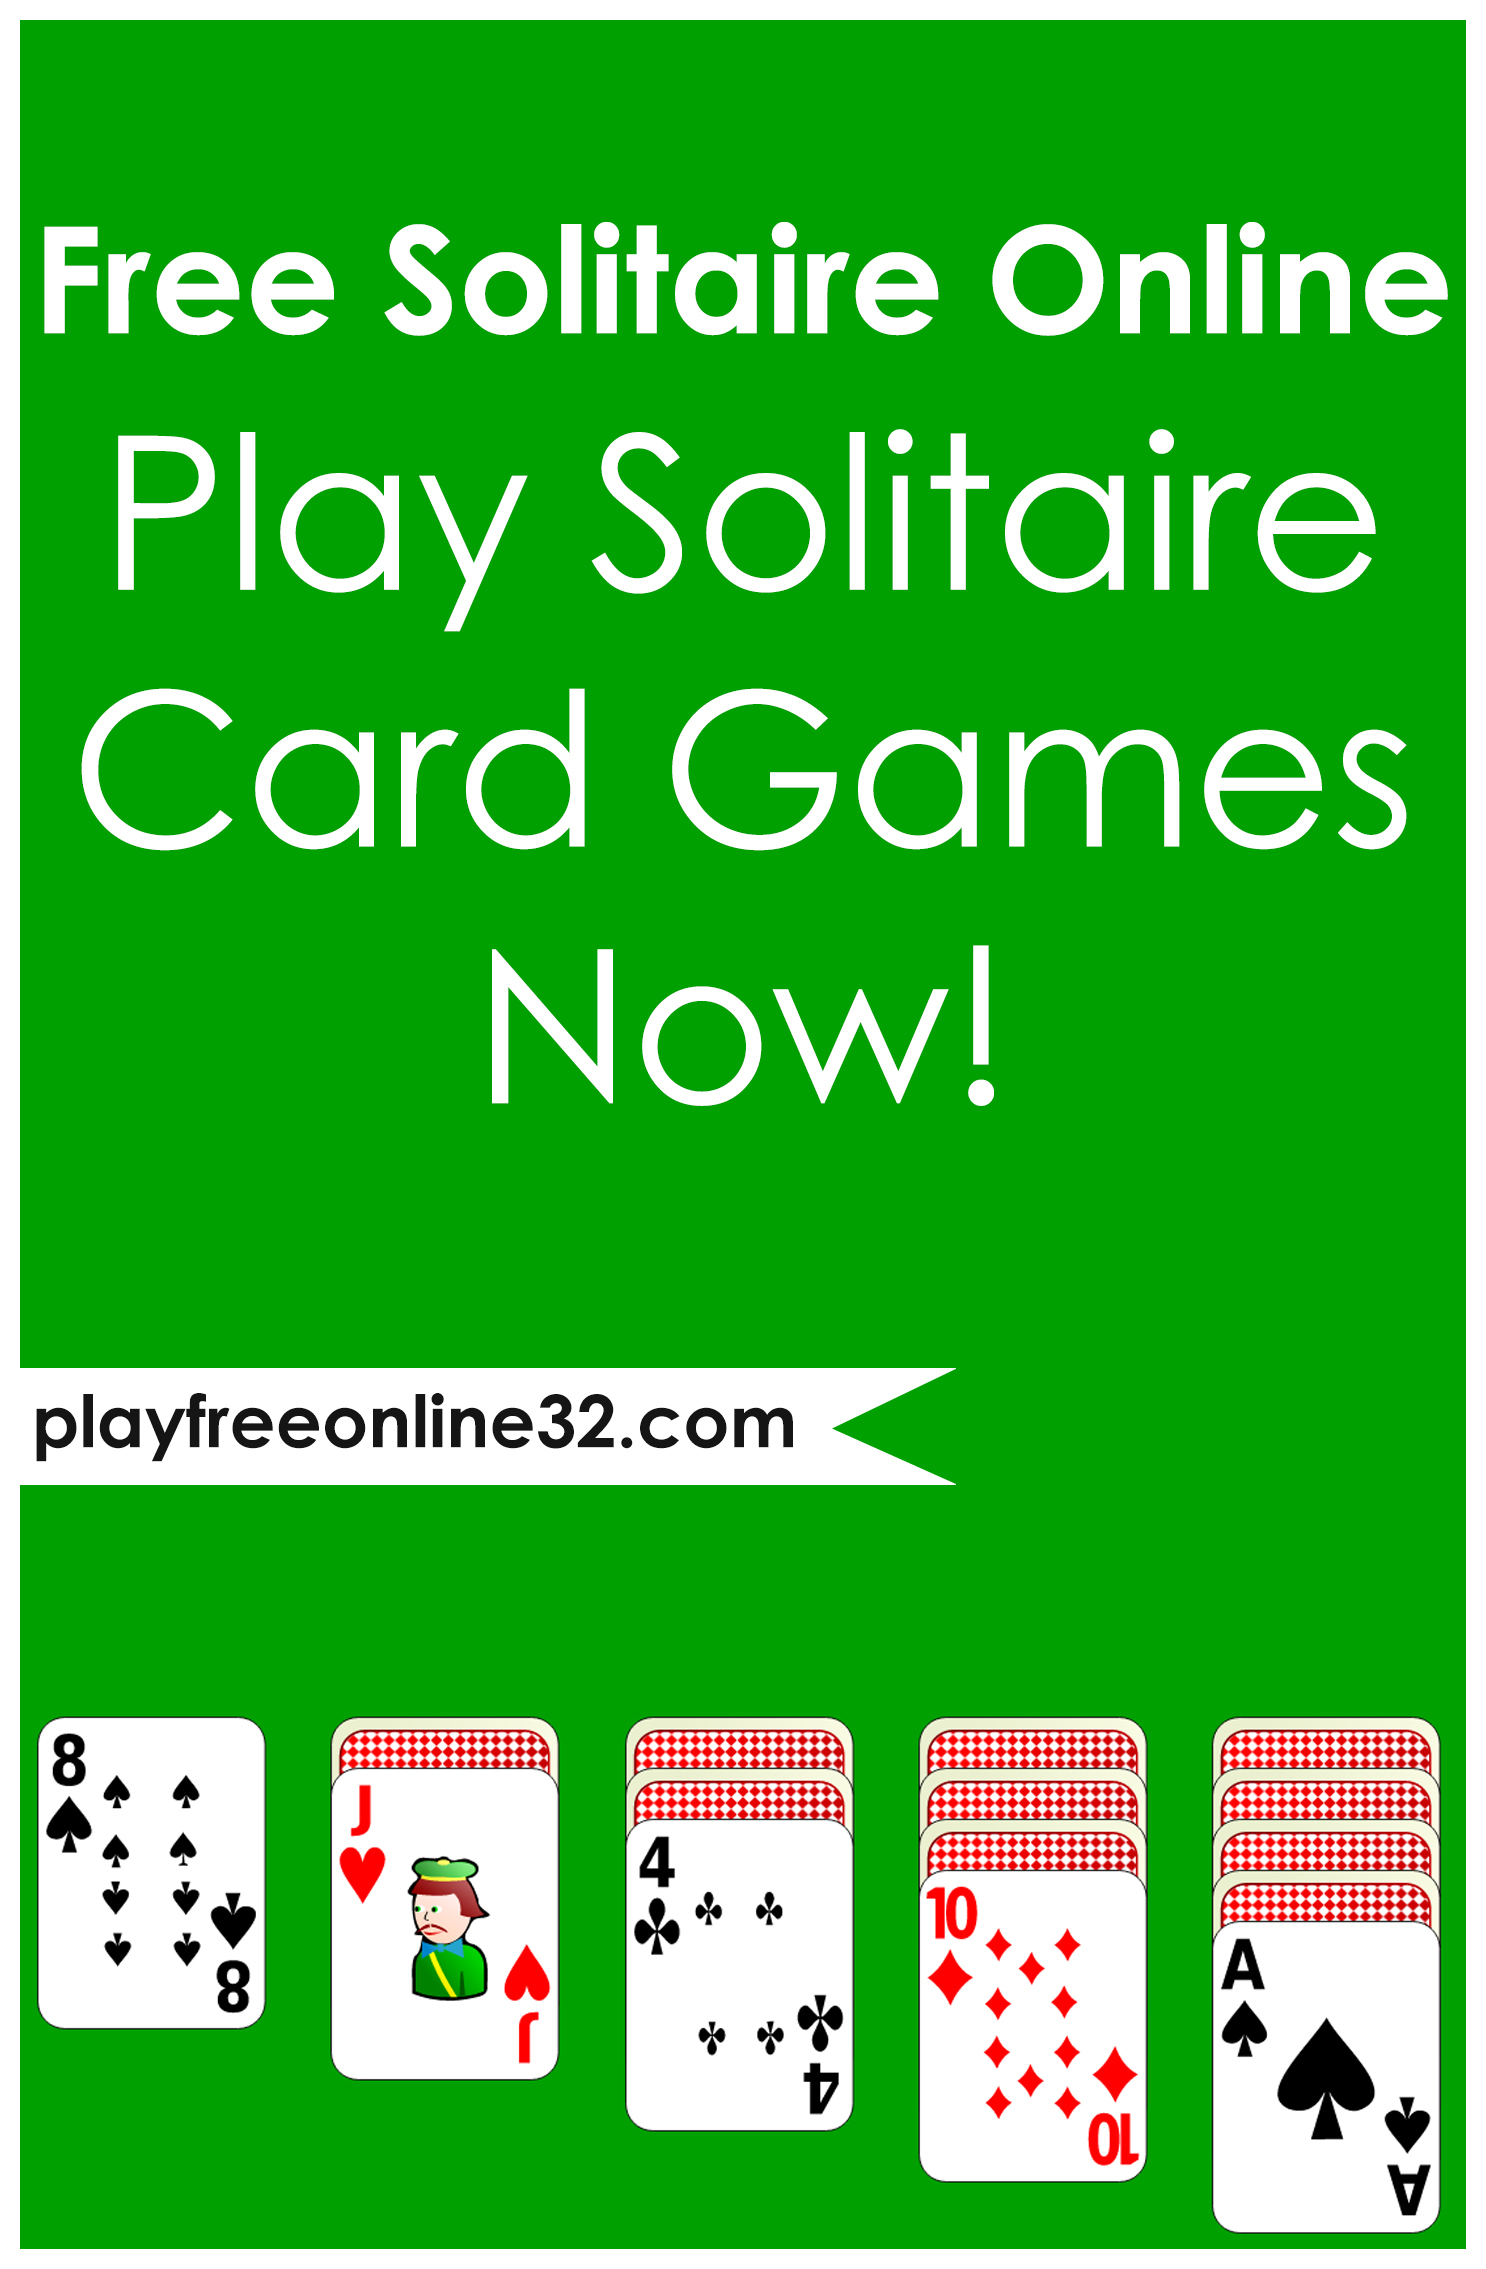 Free Solitaire Online • Play Solitaire Card Games Now!